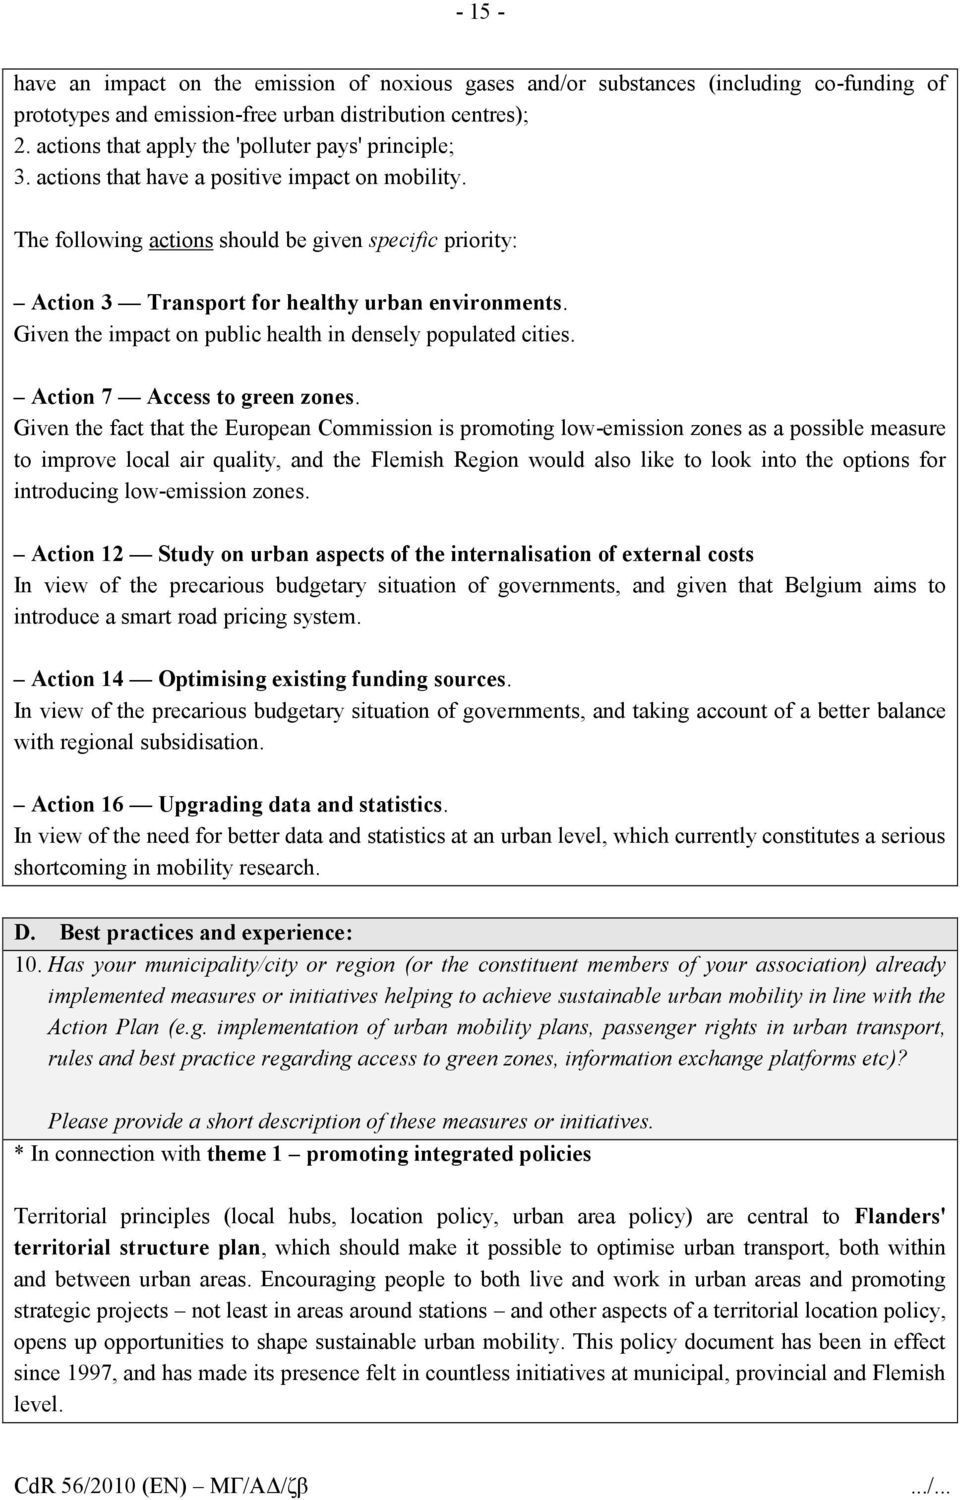 The following actions should be given specific priority: Action 3 Transport for healthy urban environments. Given the impact on public health in densely populated cities.